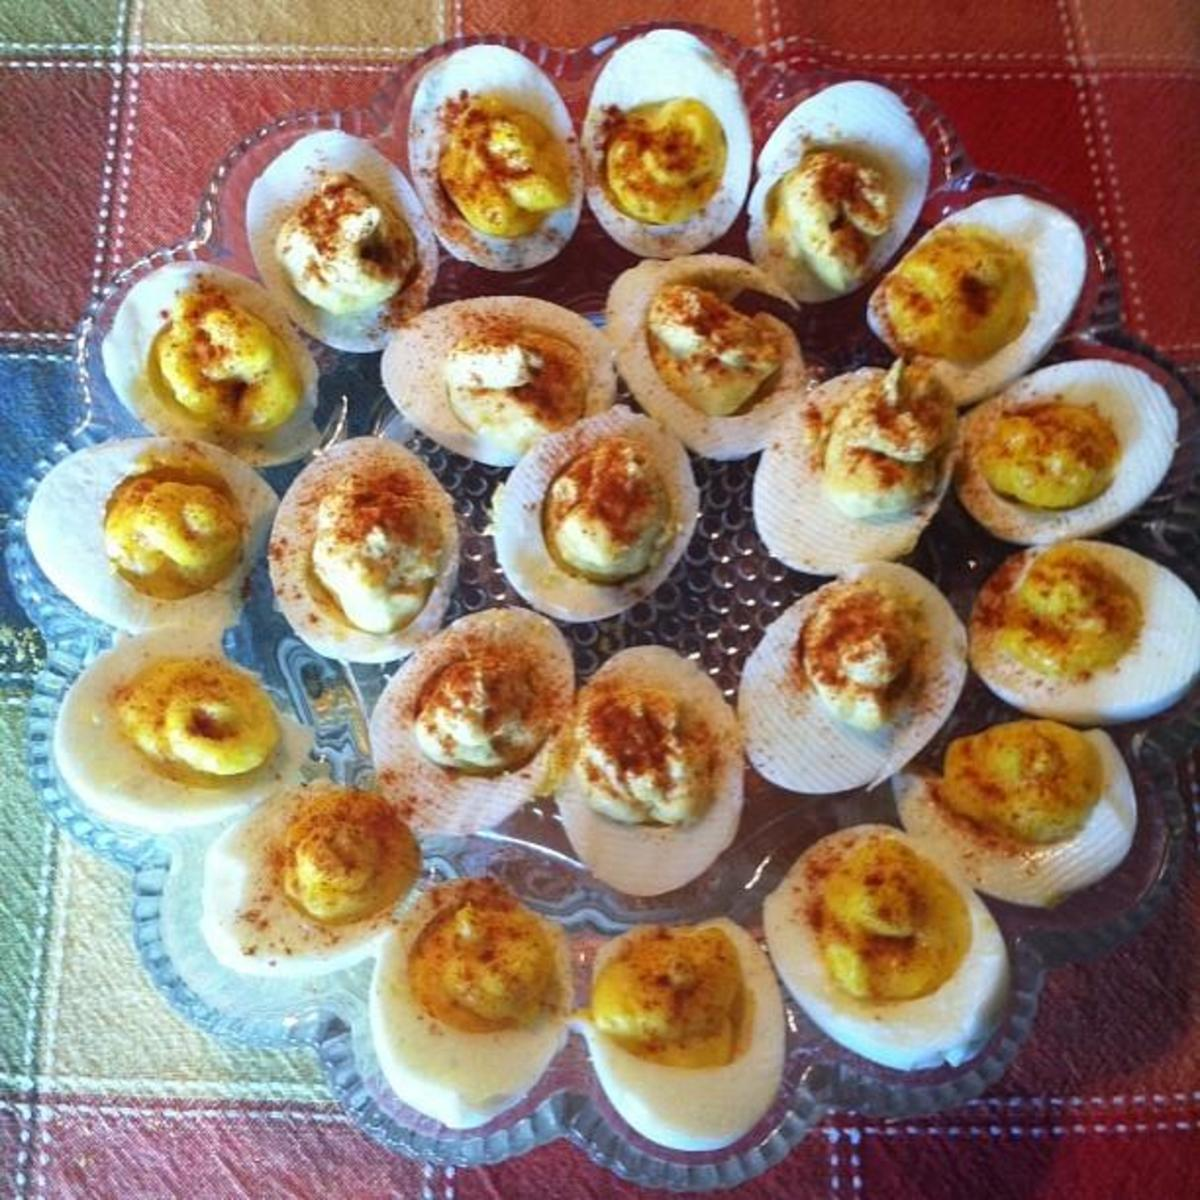 deviled eggs I made for Thanksgiving 2013